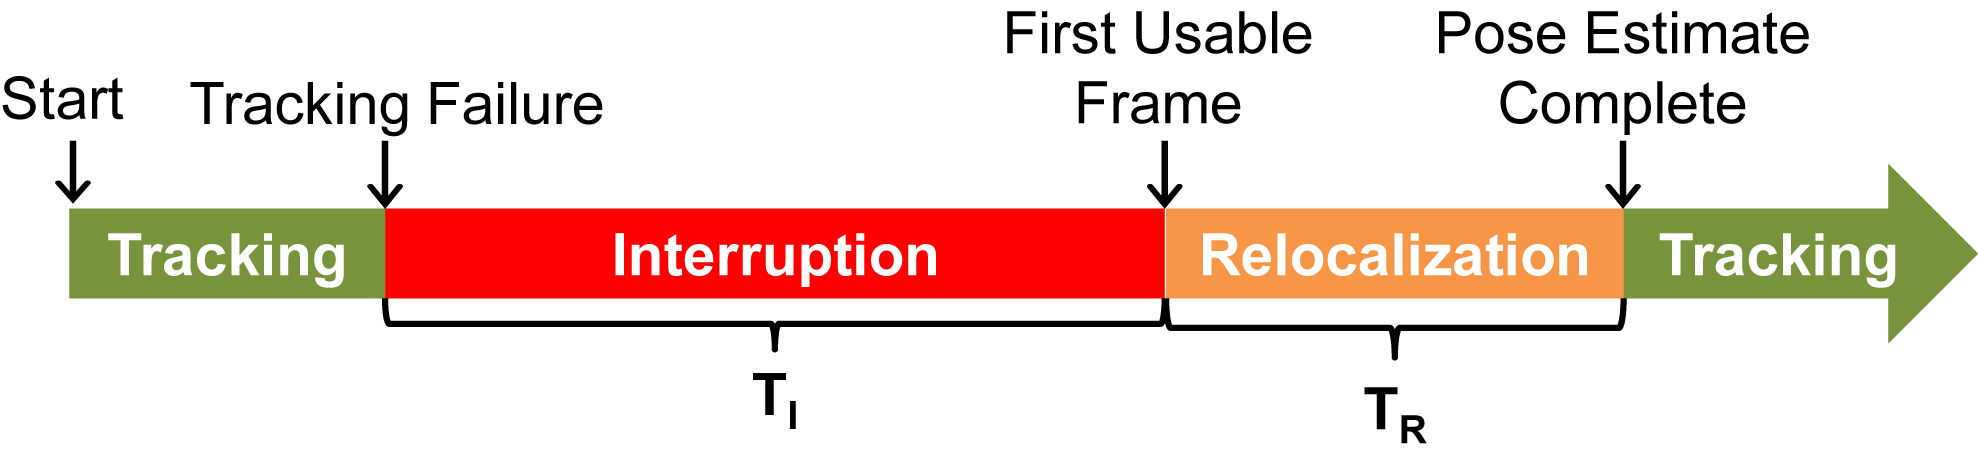 Phases of Tracking Failure and Relocalization